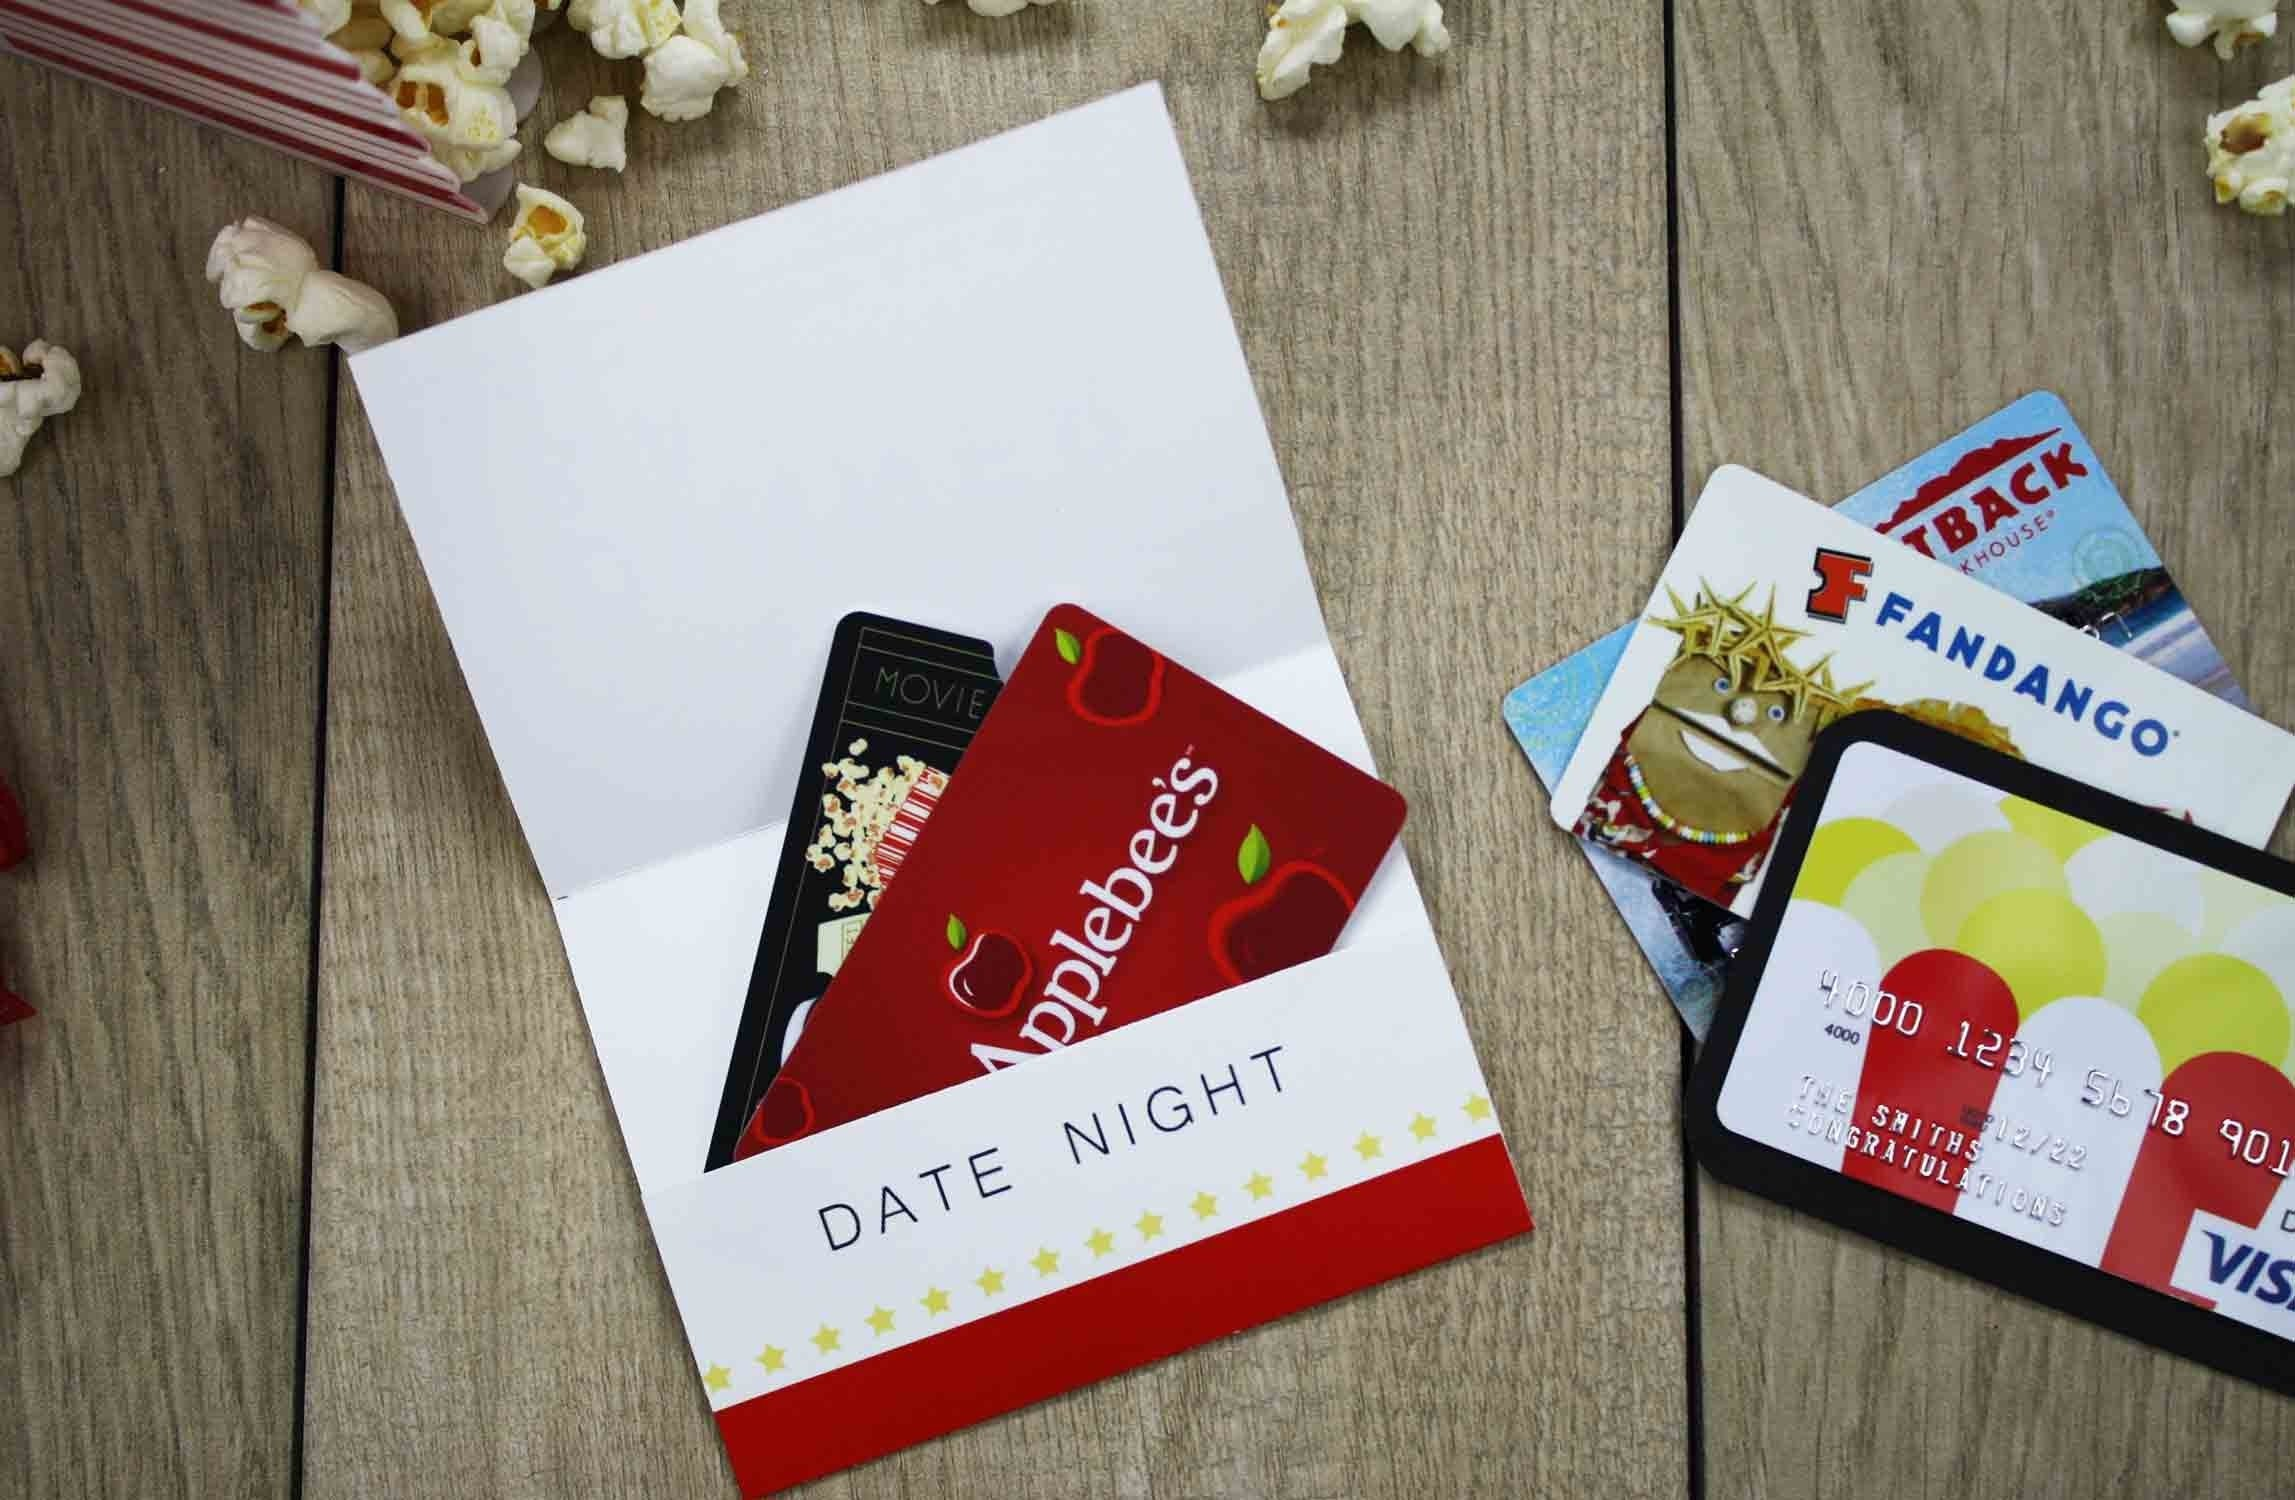 10 Stunning Ideas For Giving Gift Cards free printable give date night for a wedding gift gcg 2020